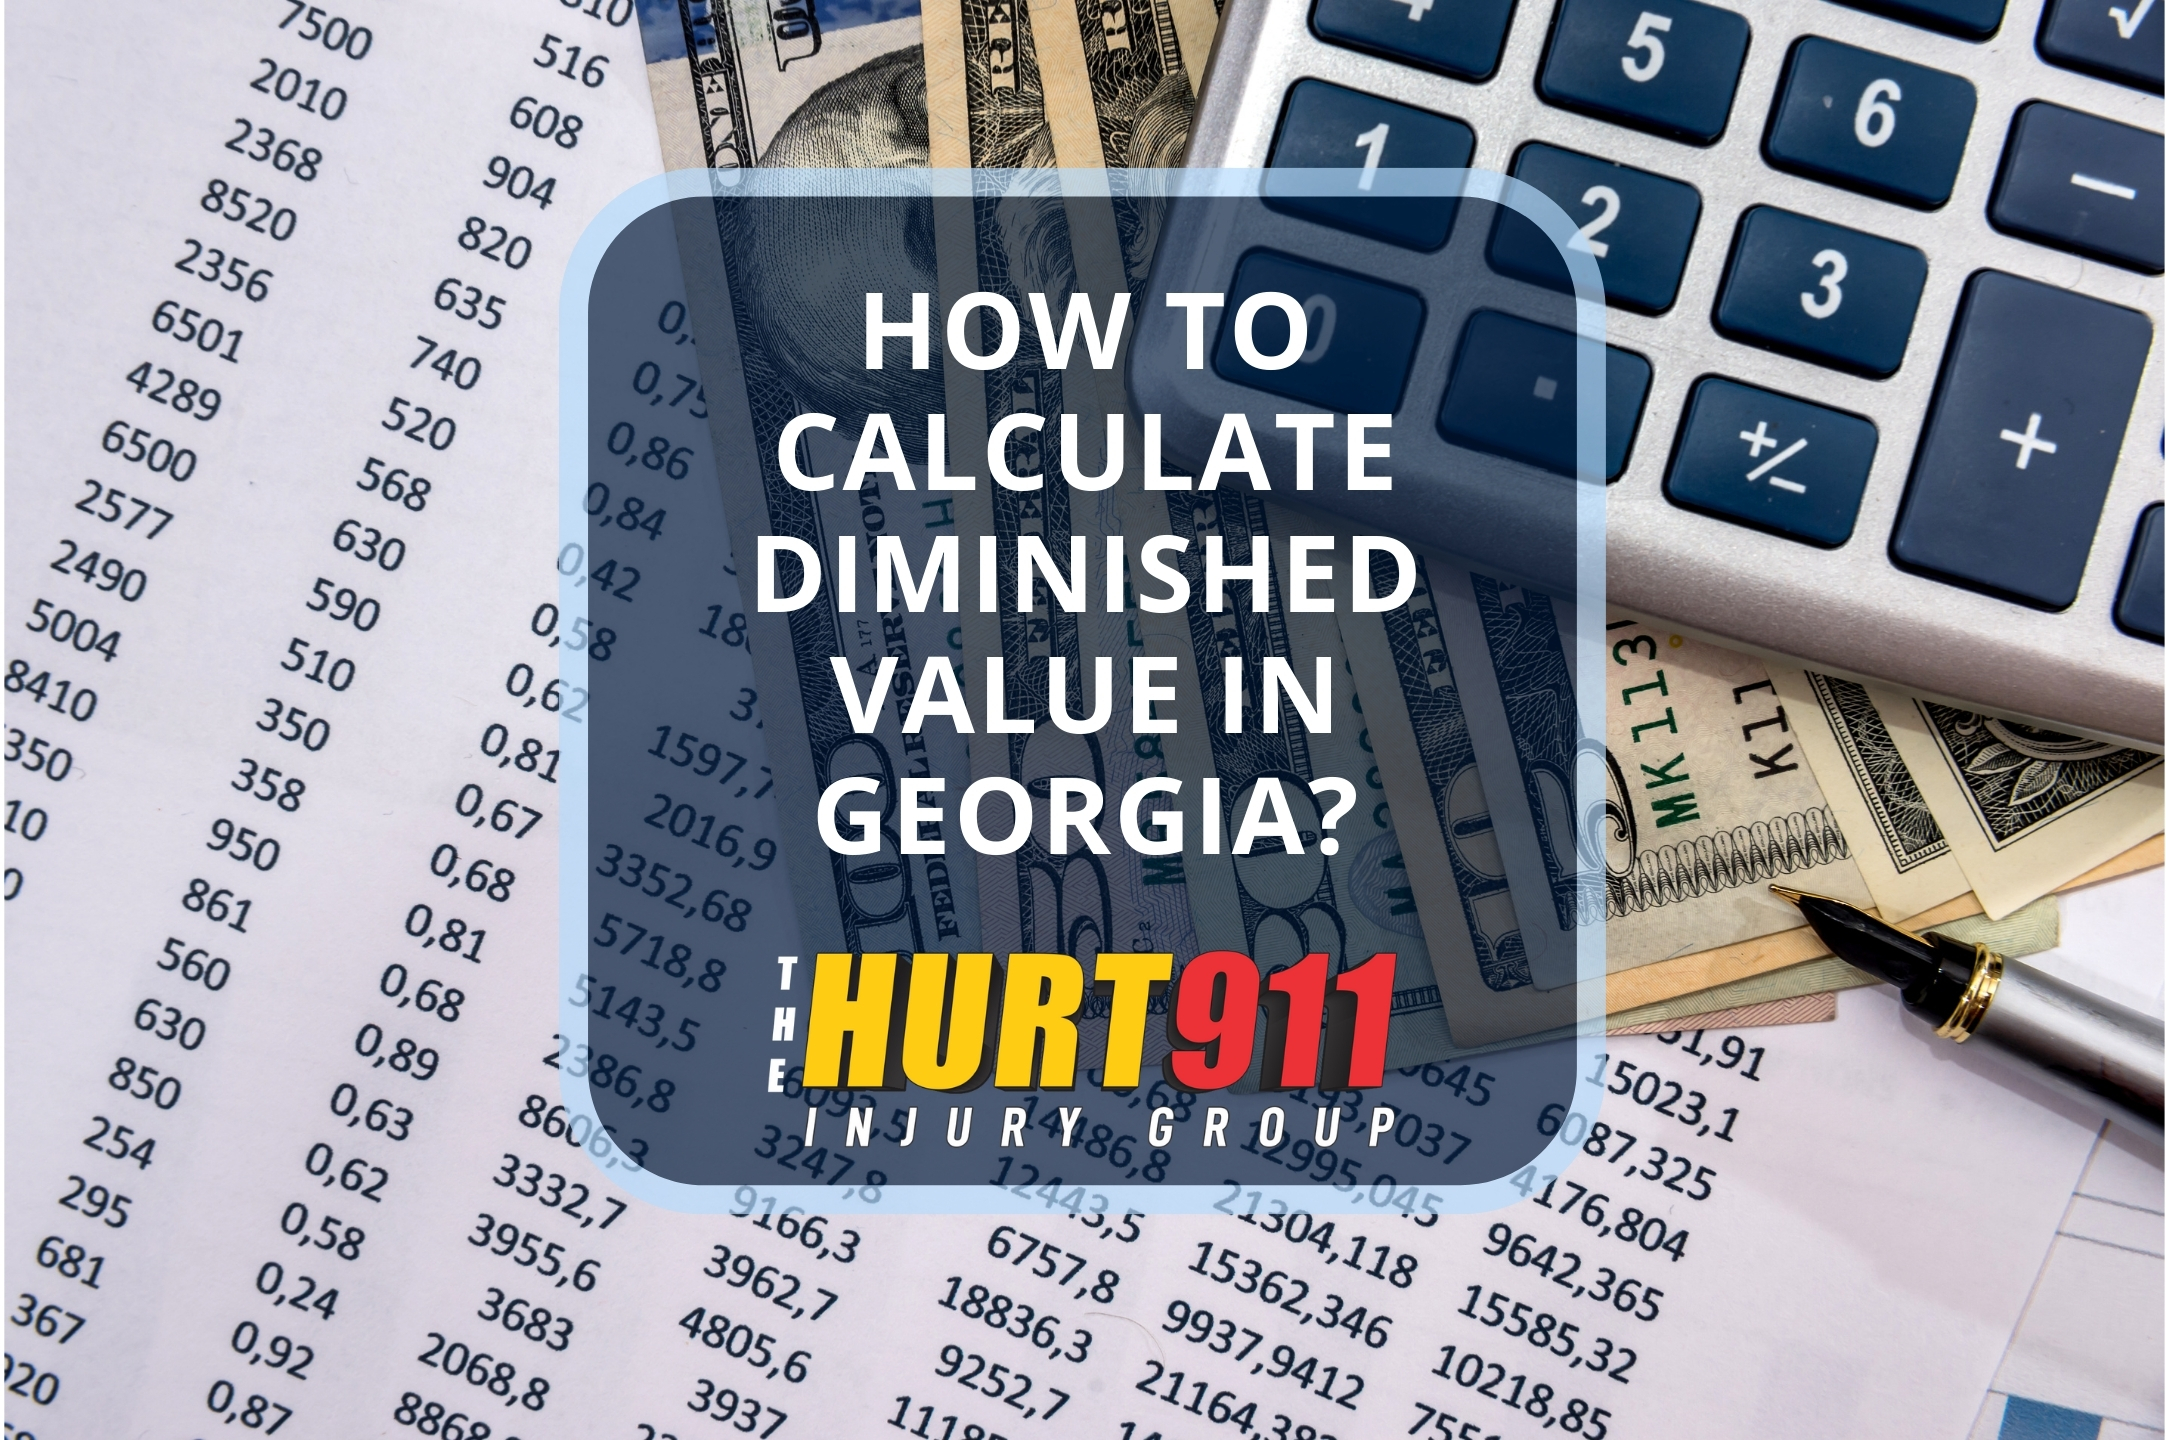 How to Calculate Diminished Value in Georgia?